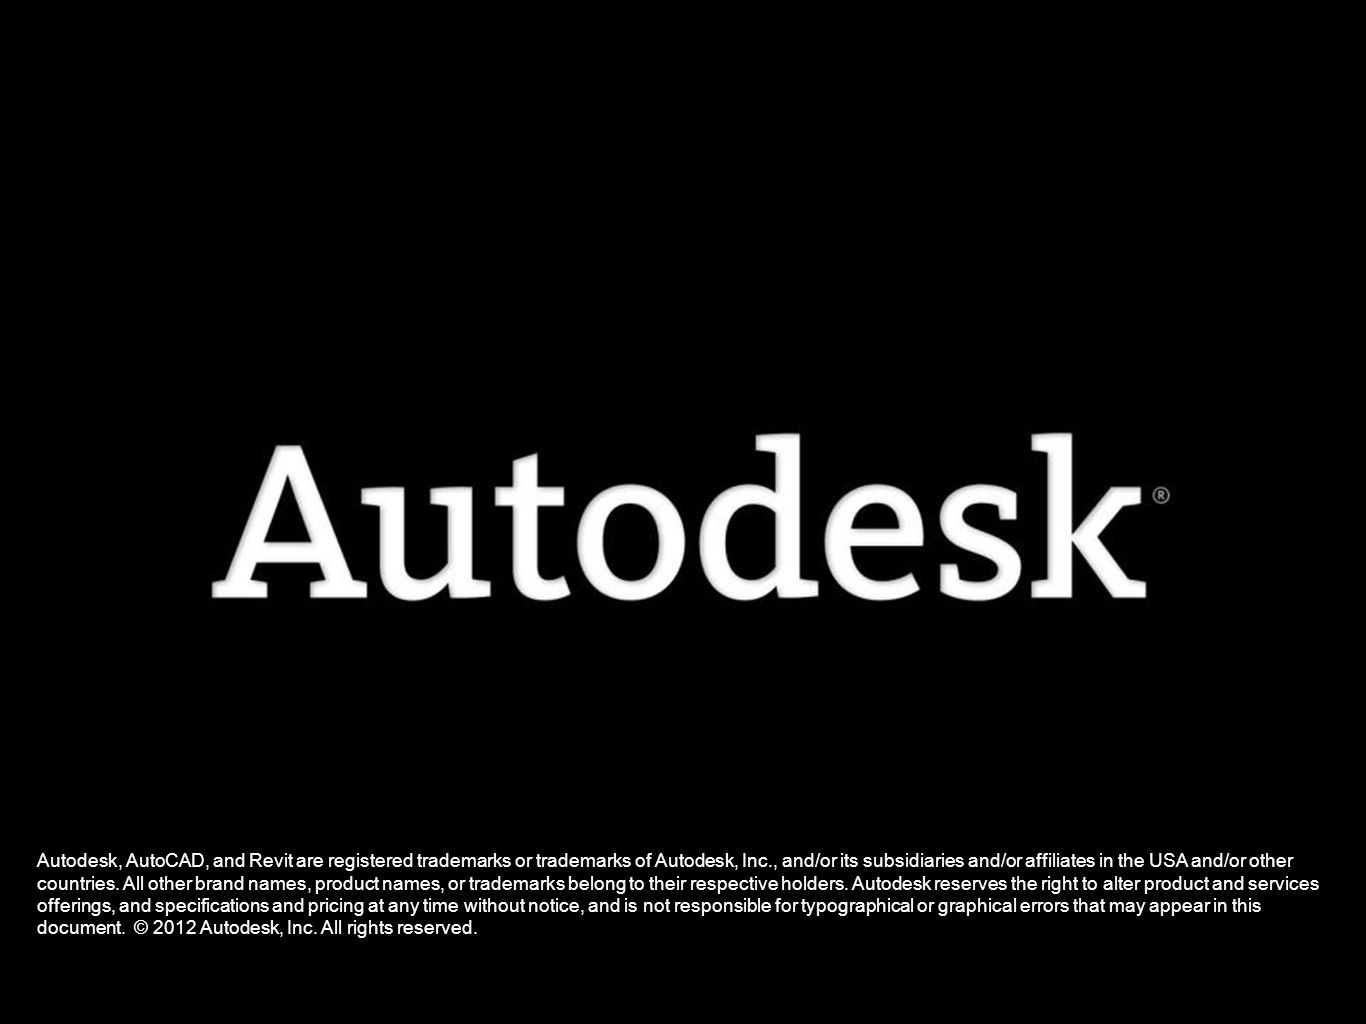 Autodesk, AutoCAD, and Revit are registered trademarks or trademarks of Autodesk, Inc., and/or its subsidiaries and/or affiliates in the USA and/or ot